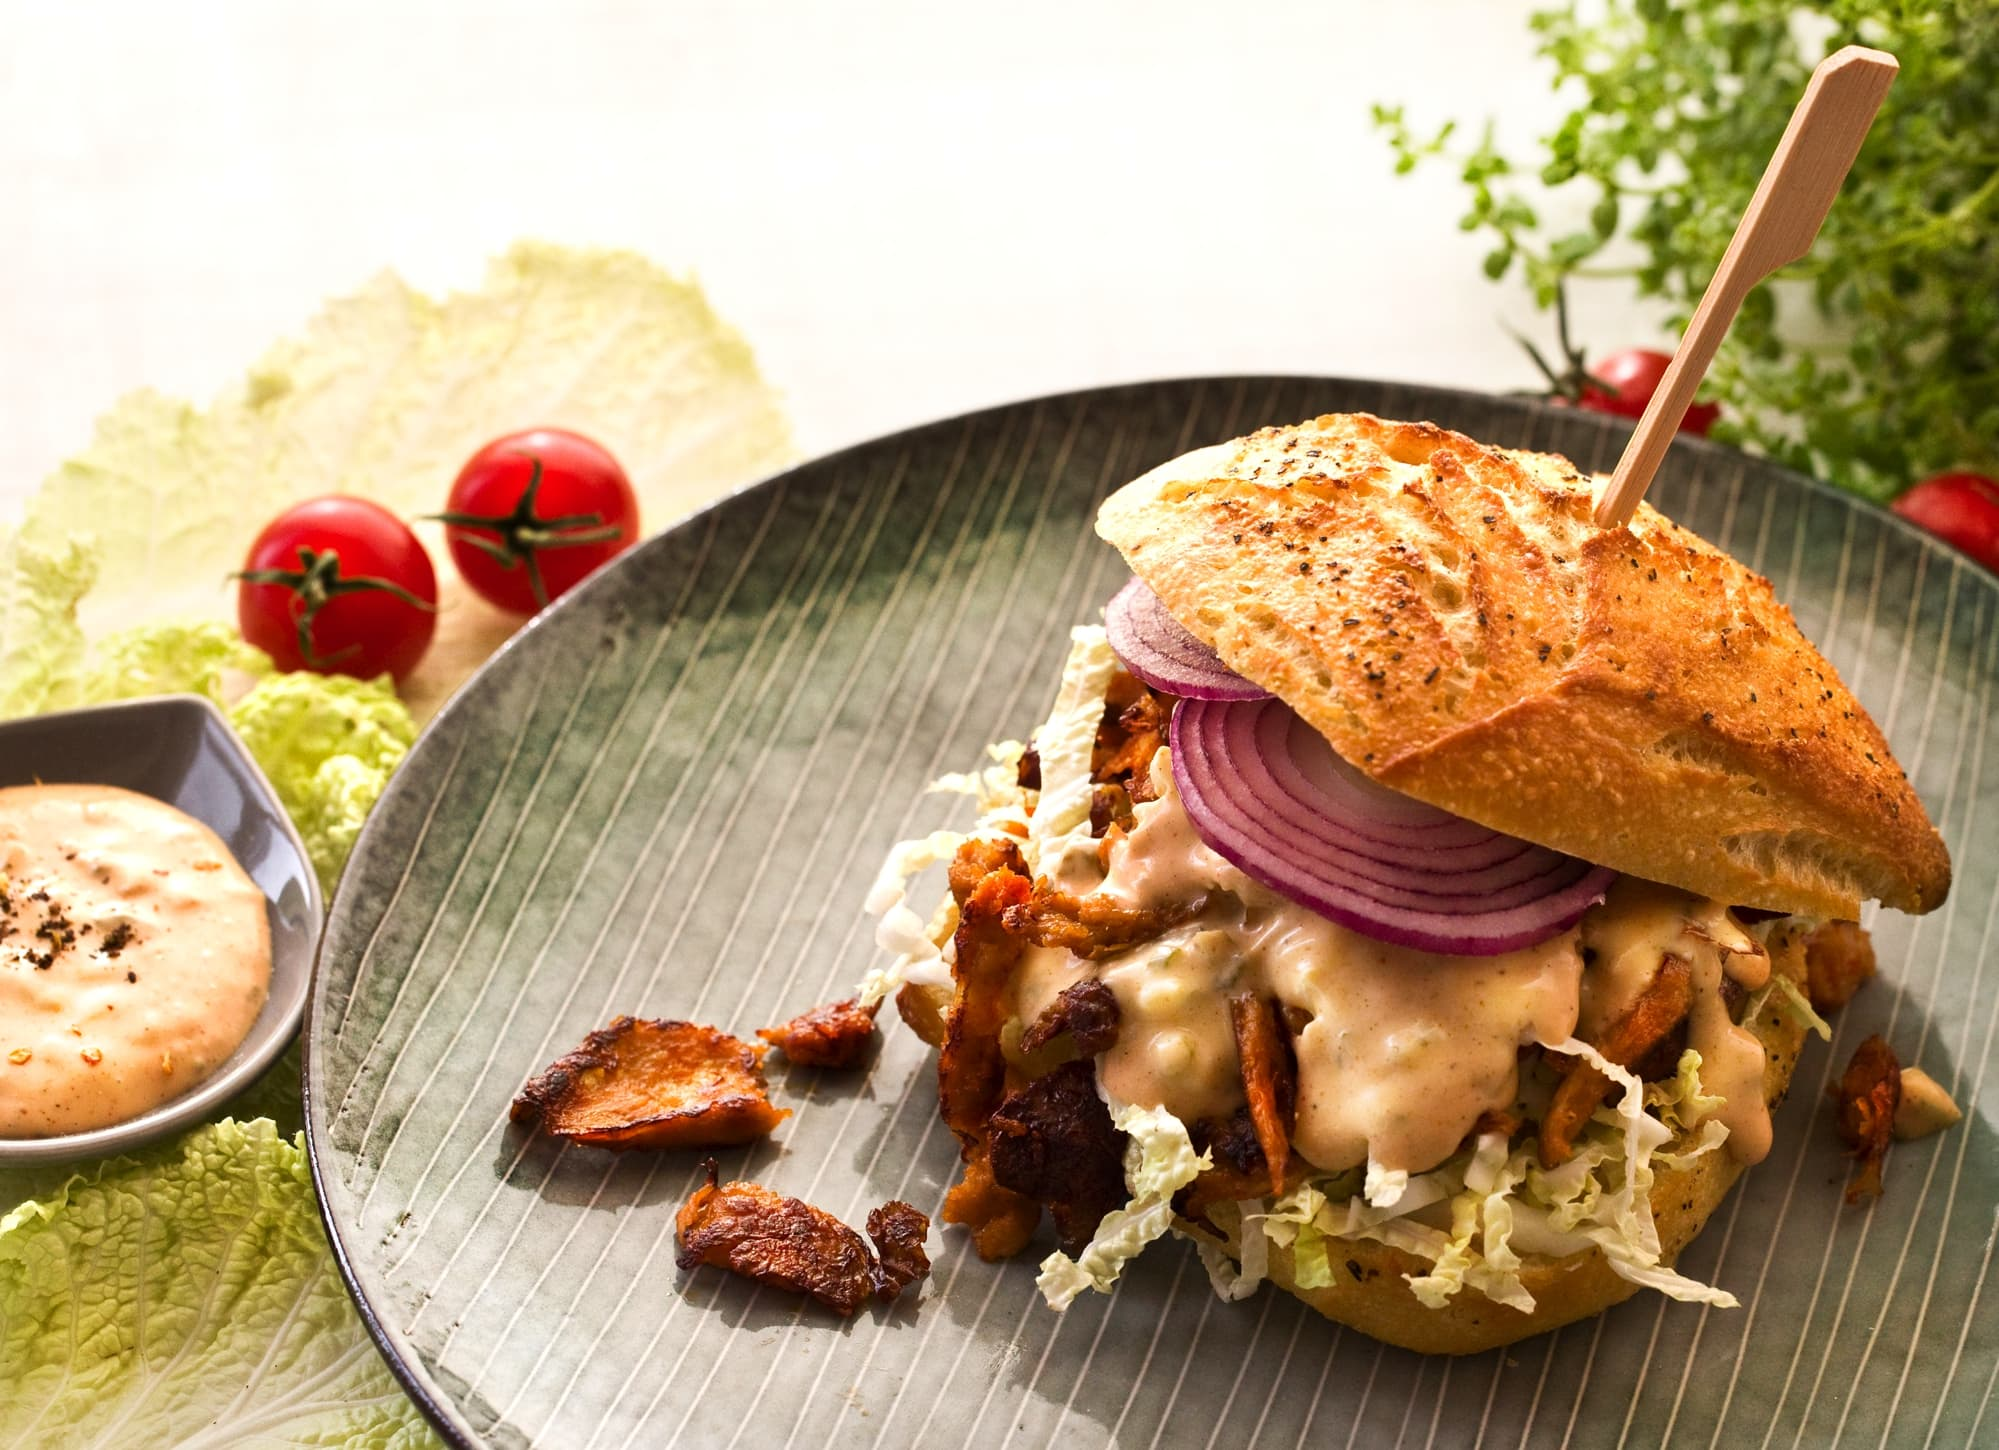 VEGANE ALTERNATIVE ZUM PULLED CHICKEN BURGER MIT DINER-SAUCE